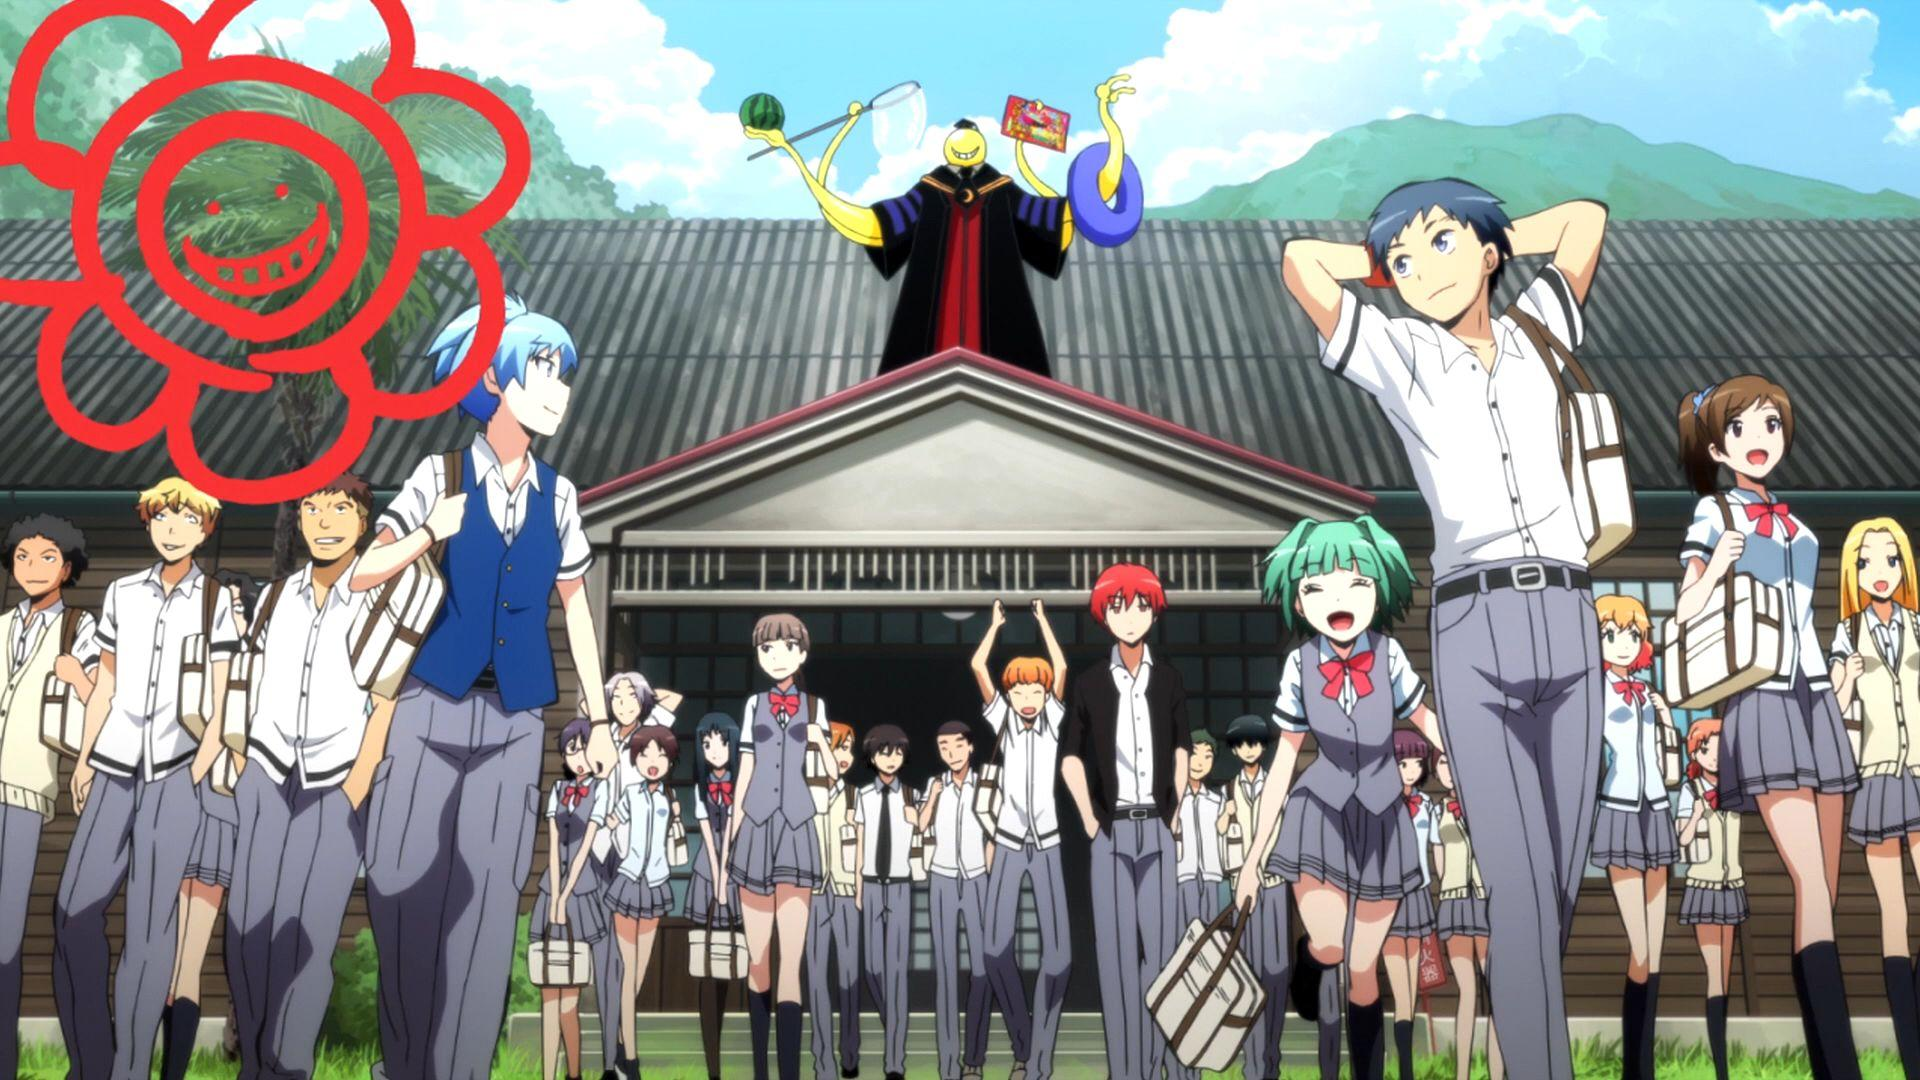 Assassination Classroom wallpapers, Anime, HQ Assassination